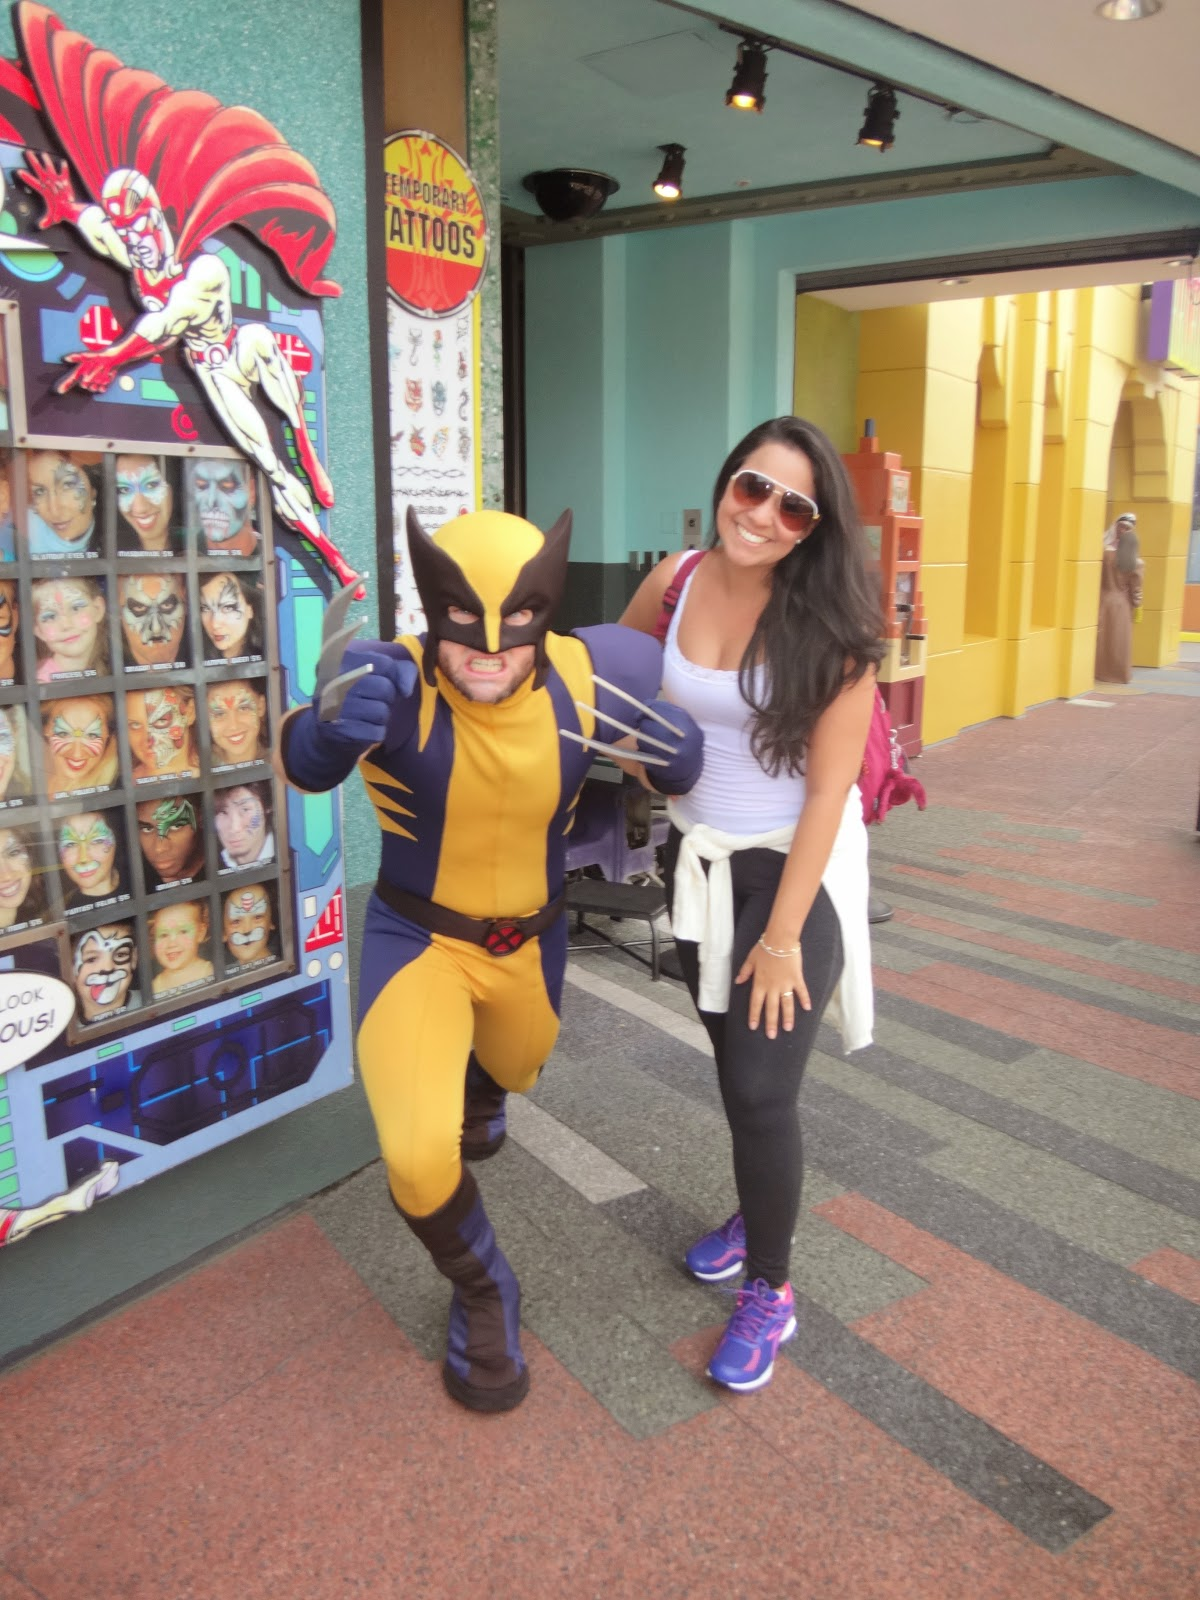 wolverine - island of adventure - orlando, estados unidos